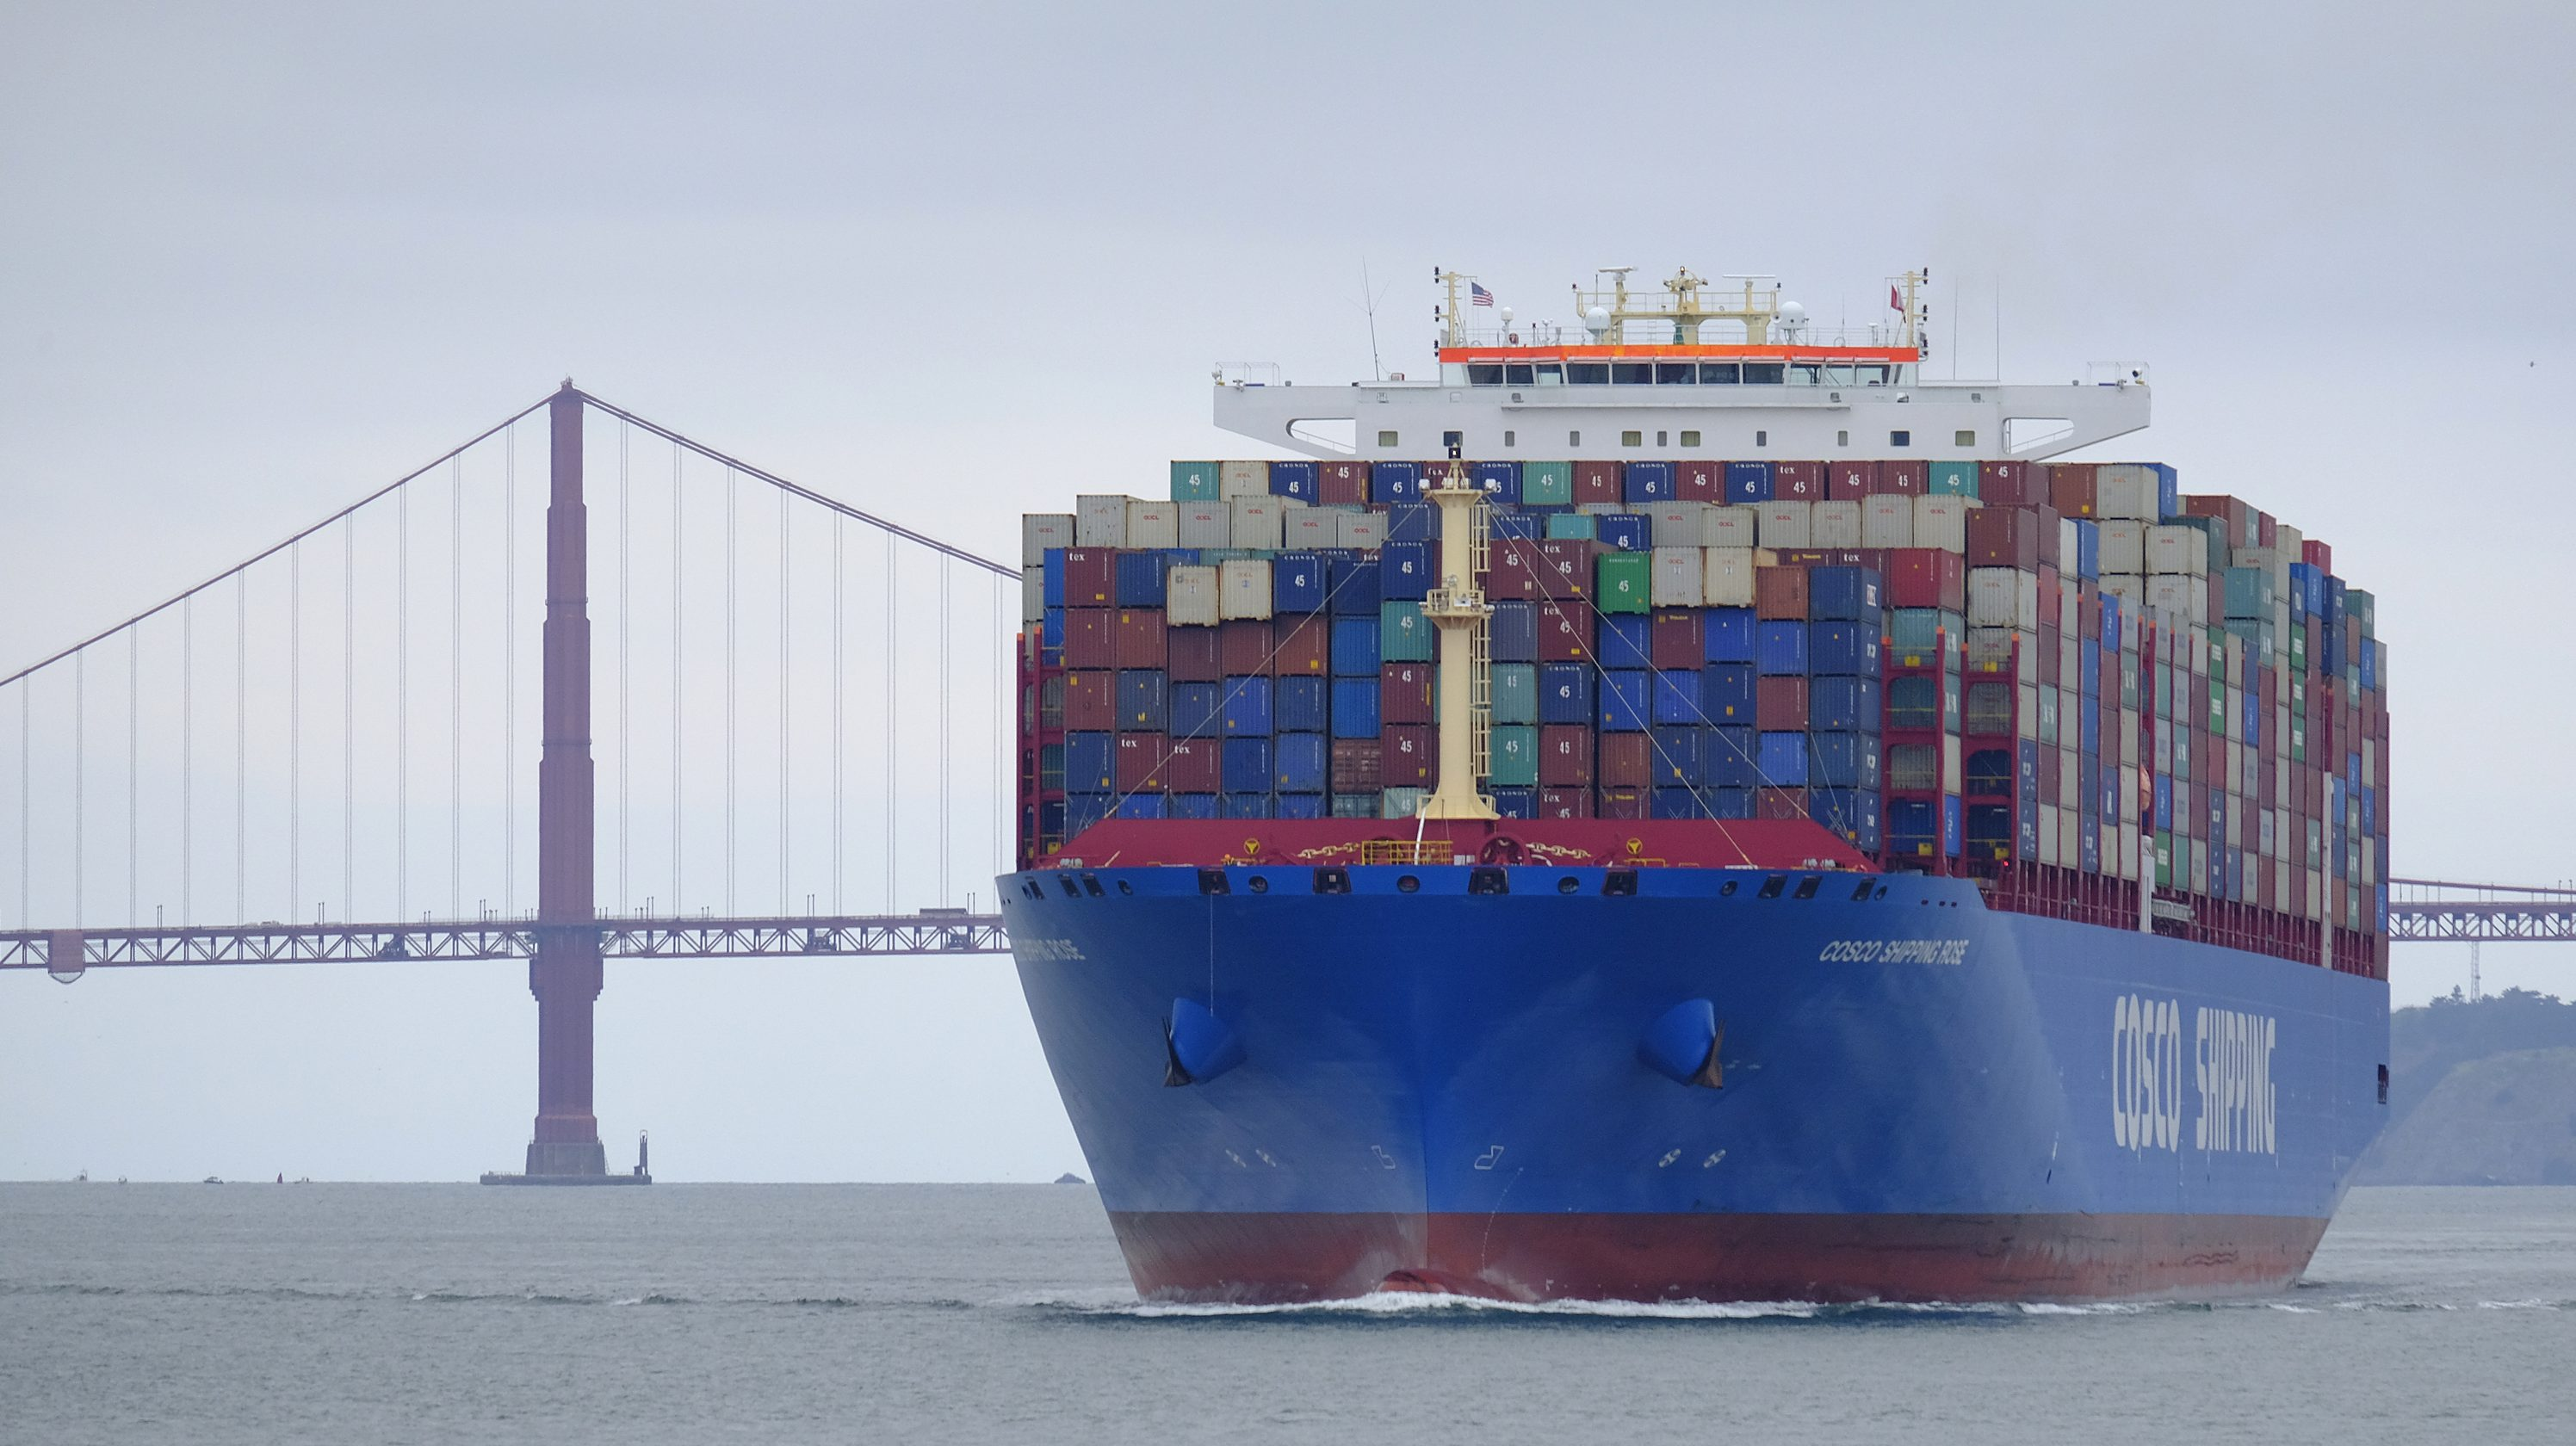 A Cosco Shipping container ship passes the Golden Gate Bridge Tuesday, May 14, 2019, in San Francisco bound for the Port of Oakland.